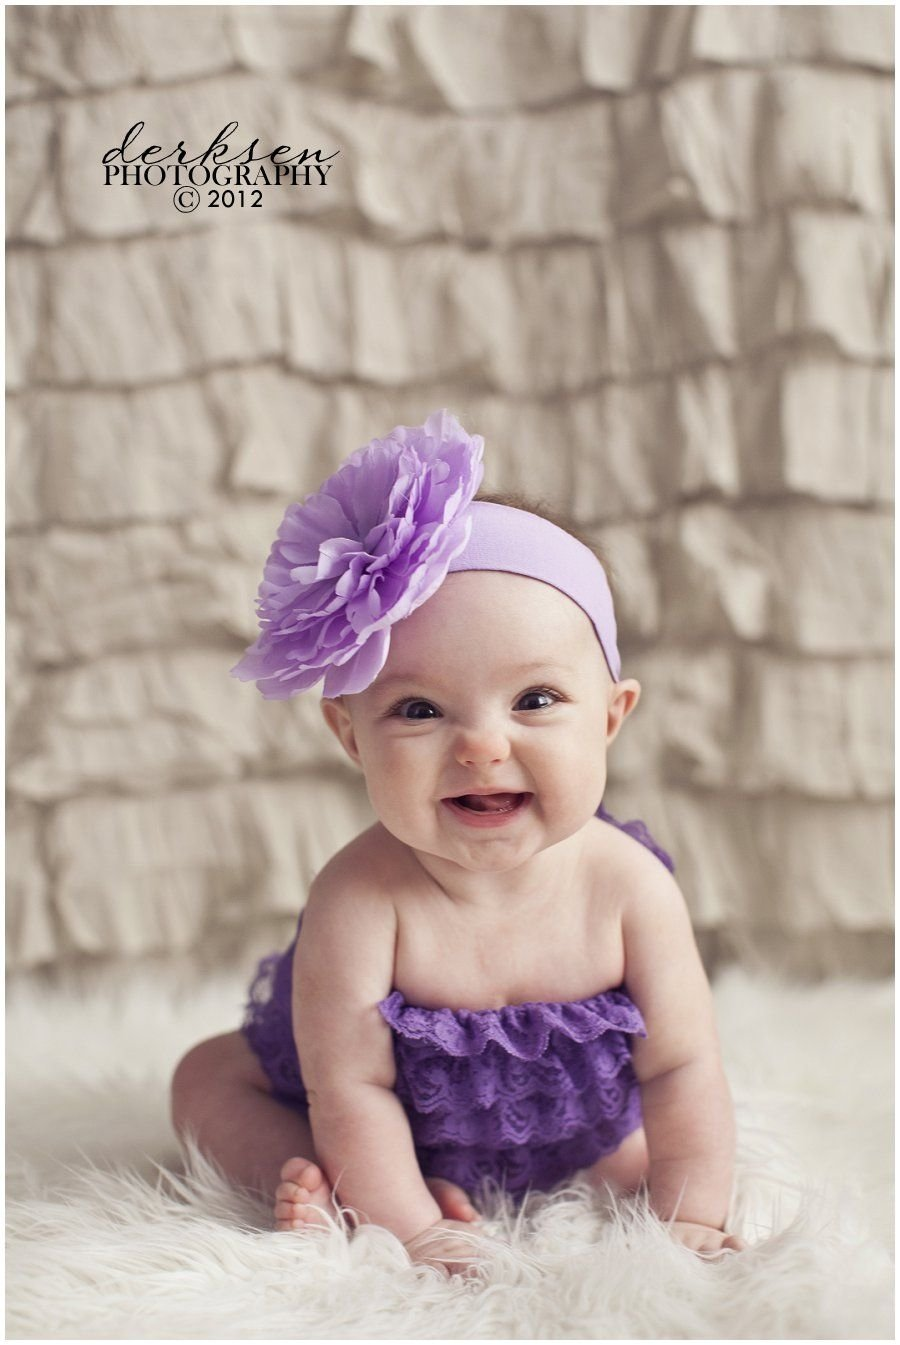 10 Fabulous 6 Month Baby Picture Ideas sweet little 6 month old the best age baby photography 5